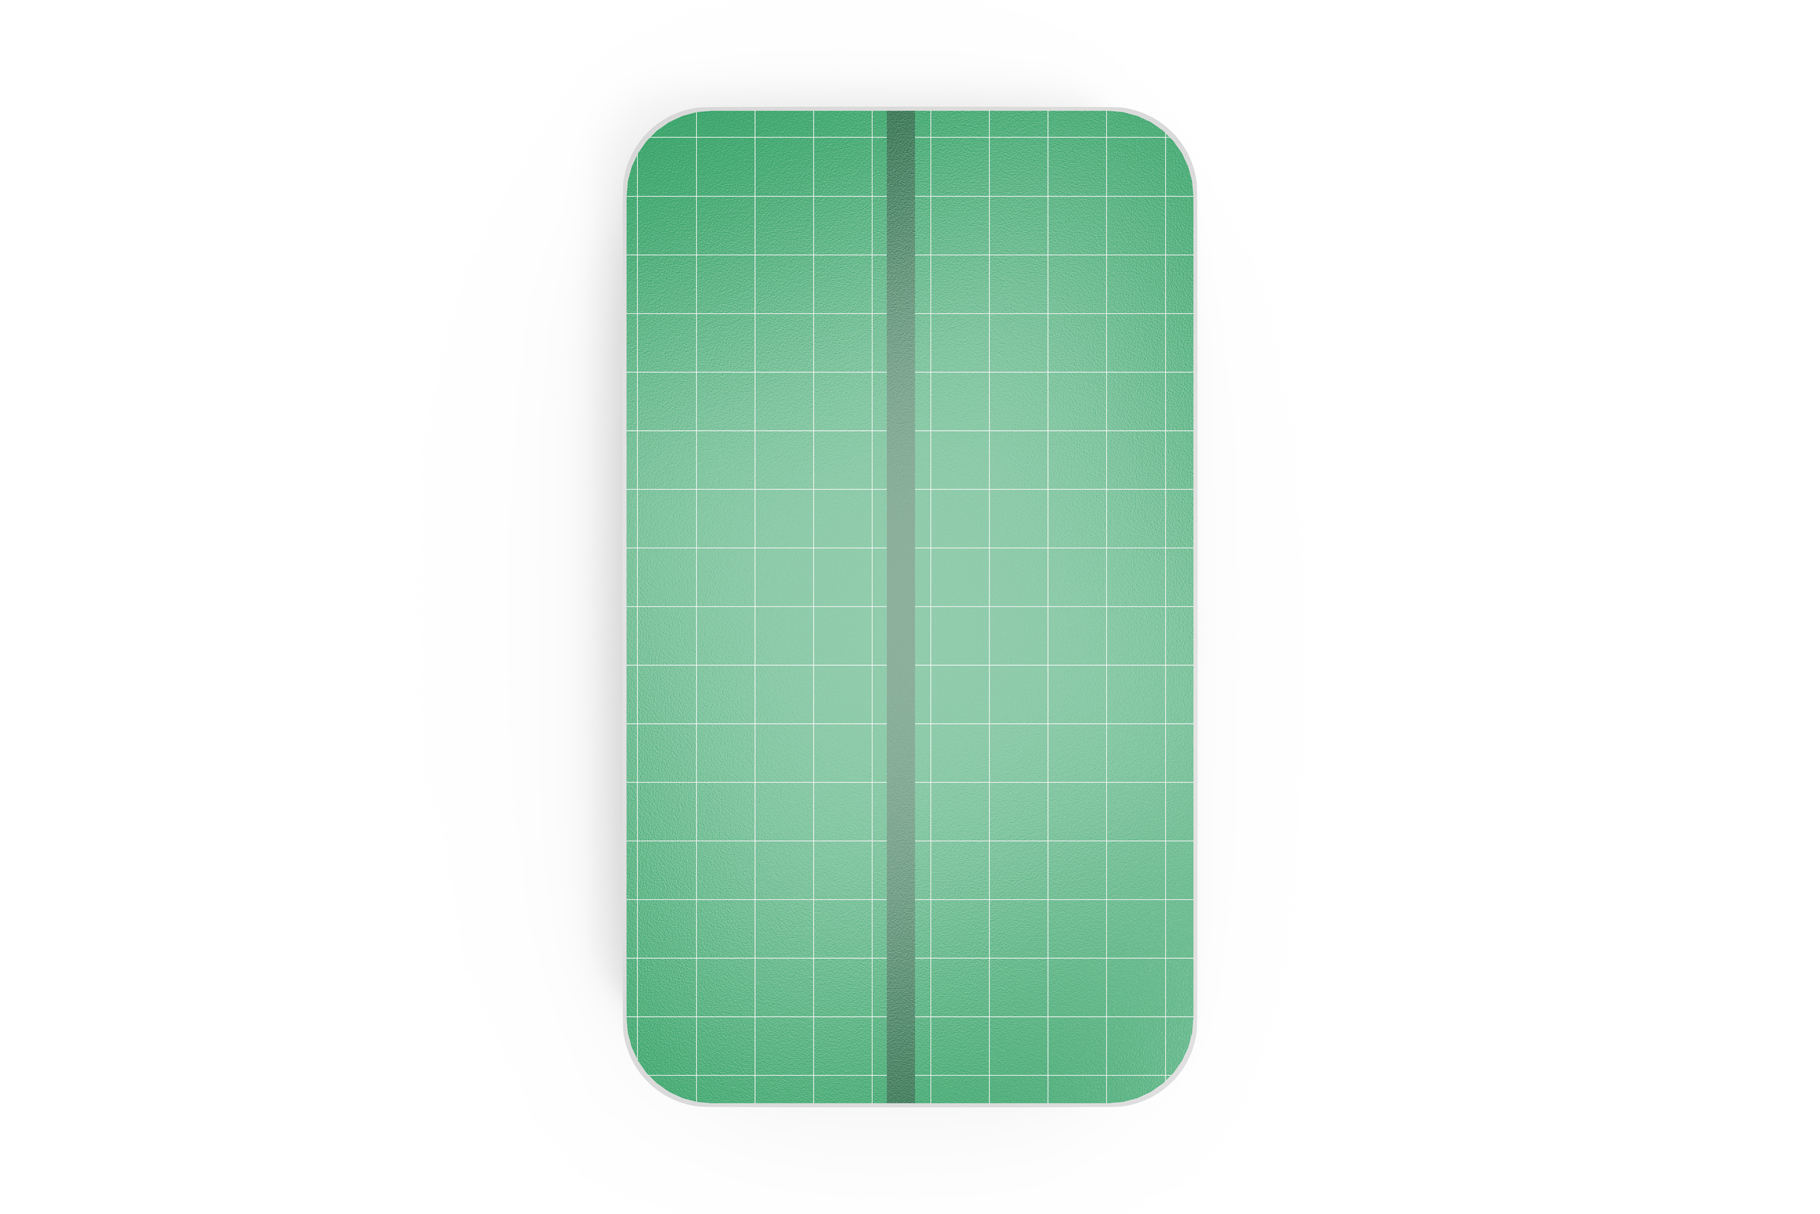 Plastic Tray With Asparagus Mockup example image 2